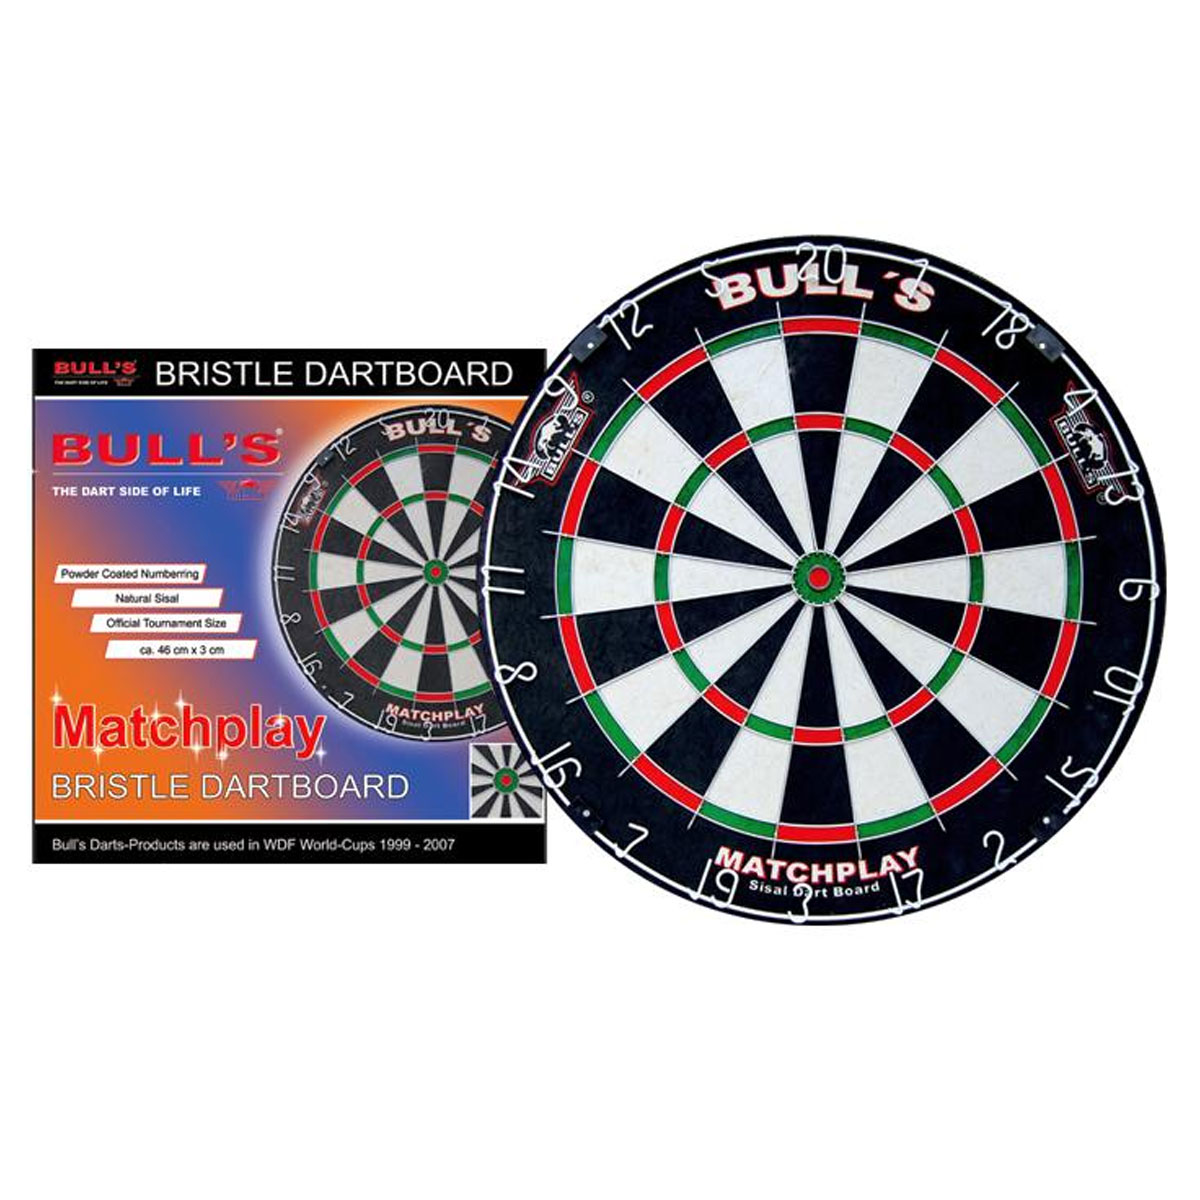 Мишень для дартс Bulls Matchplay Bristle Board, 46 см х 3